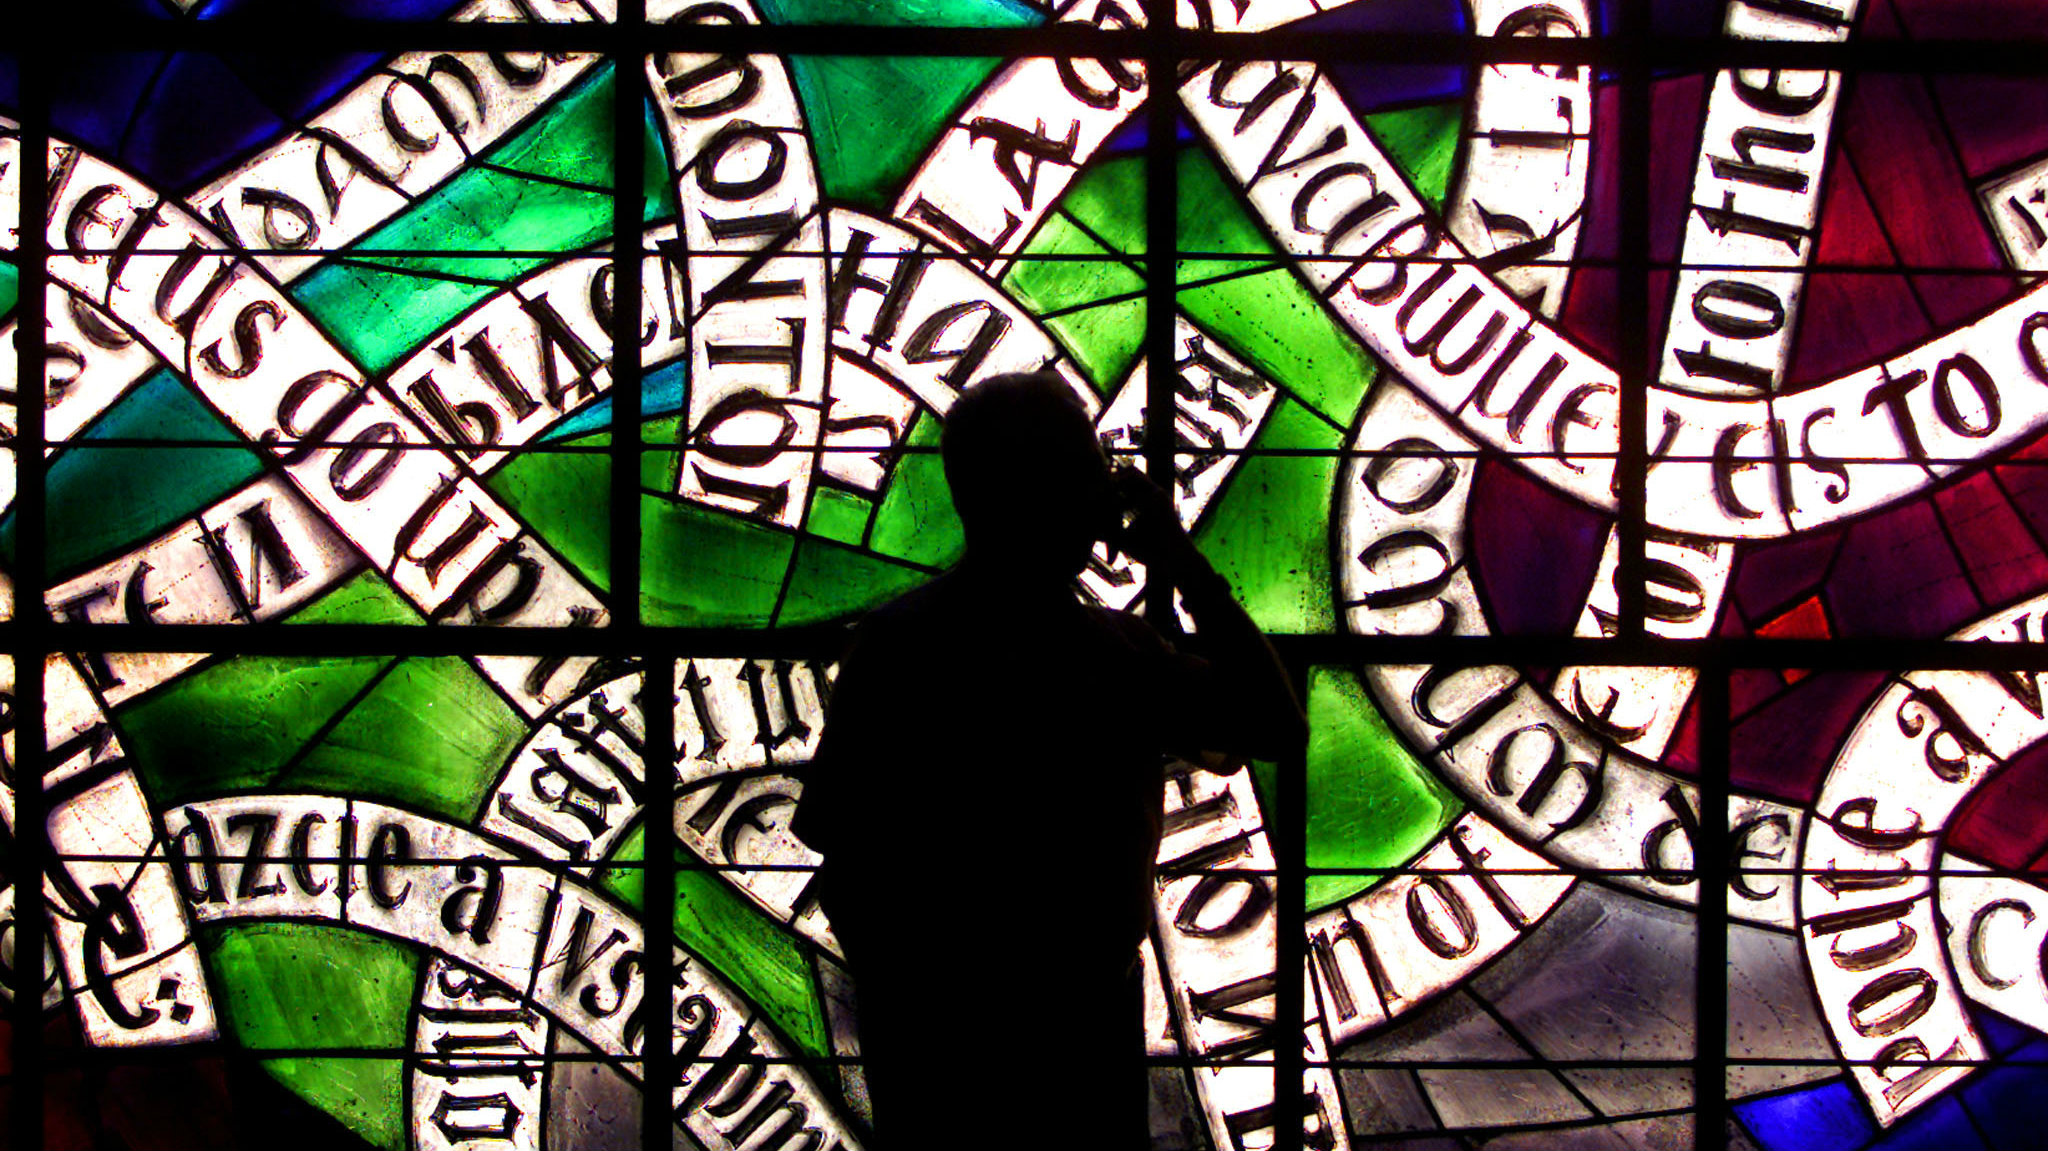 Man talking in front of stained glass window.